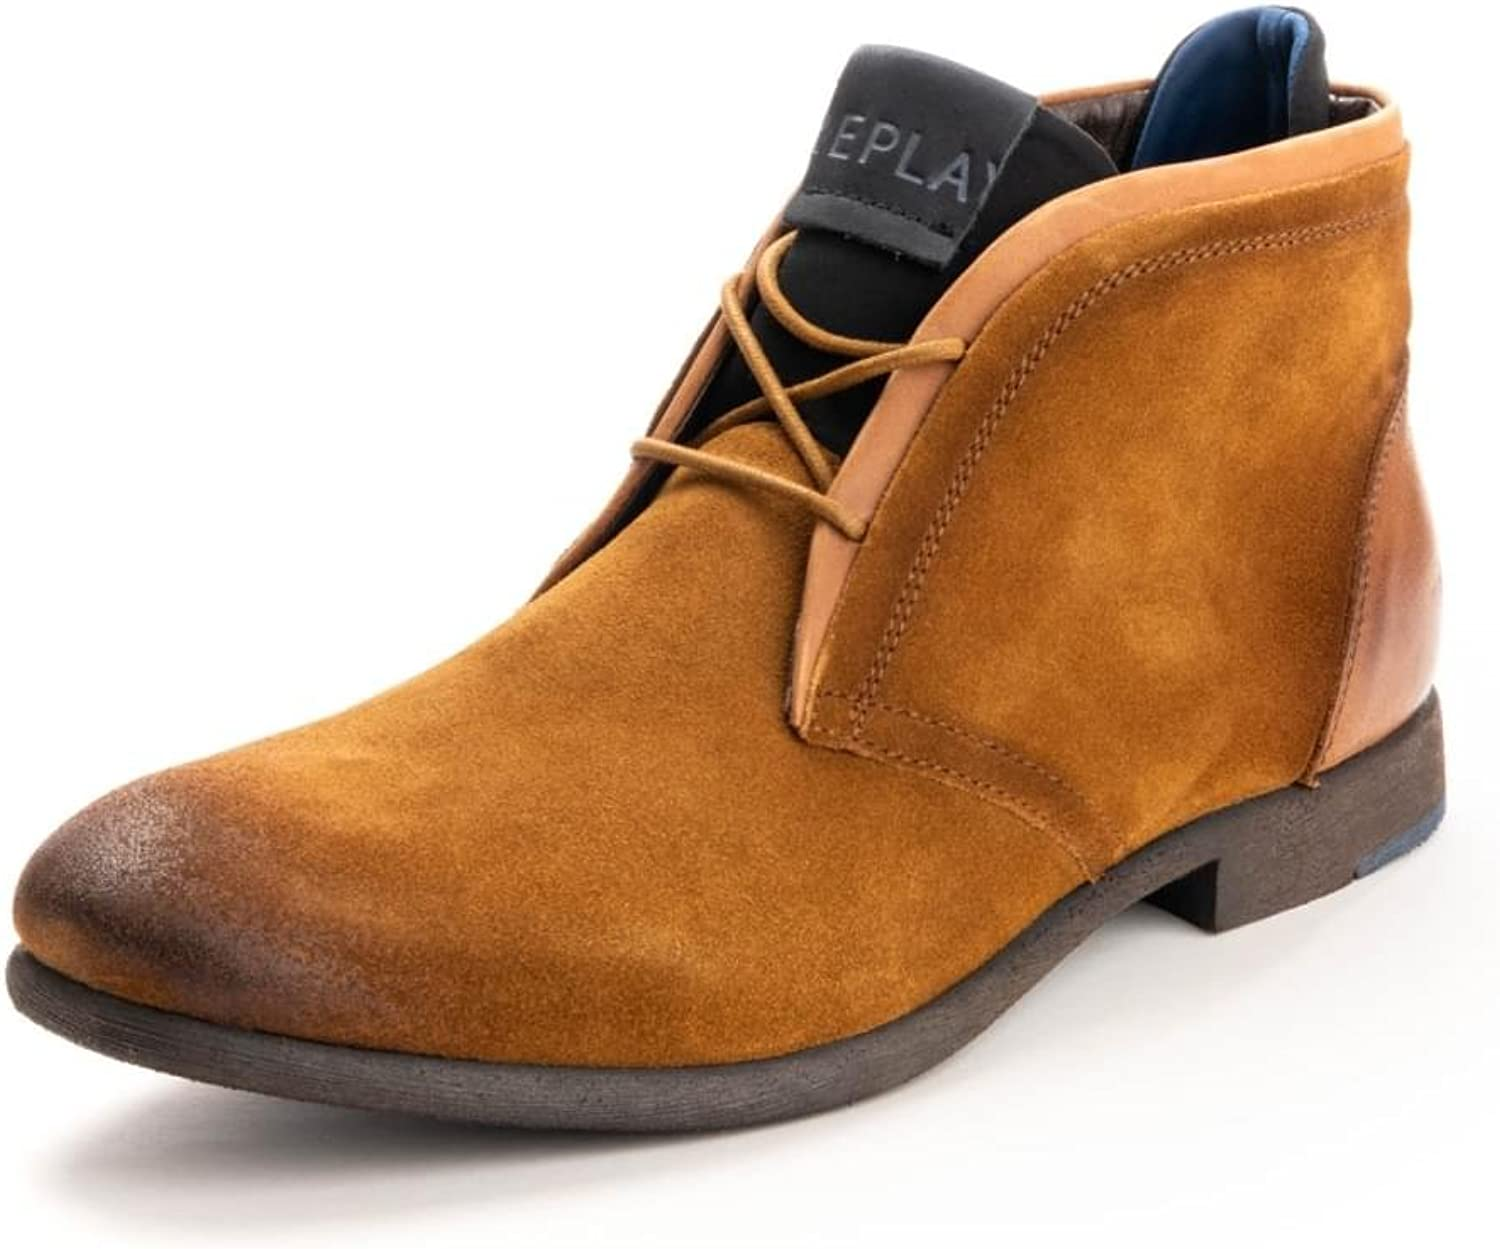 Replay Leather Mens shoes GMC42 .003.C0021L